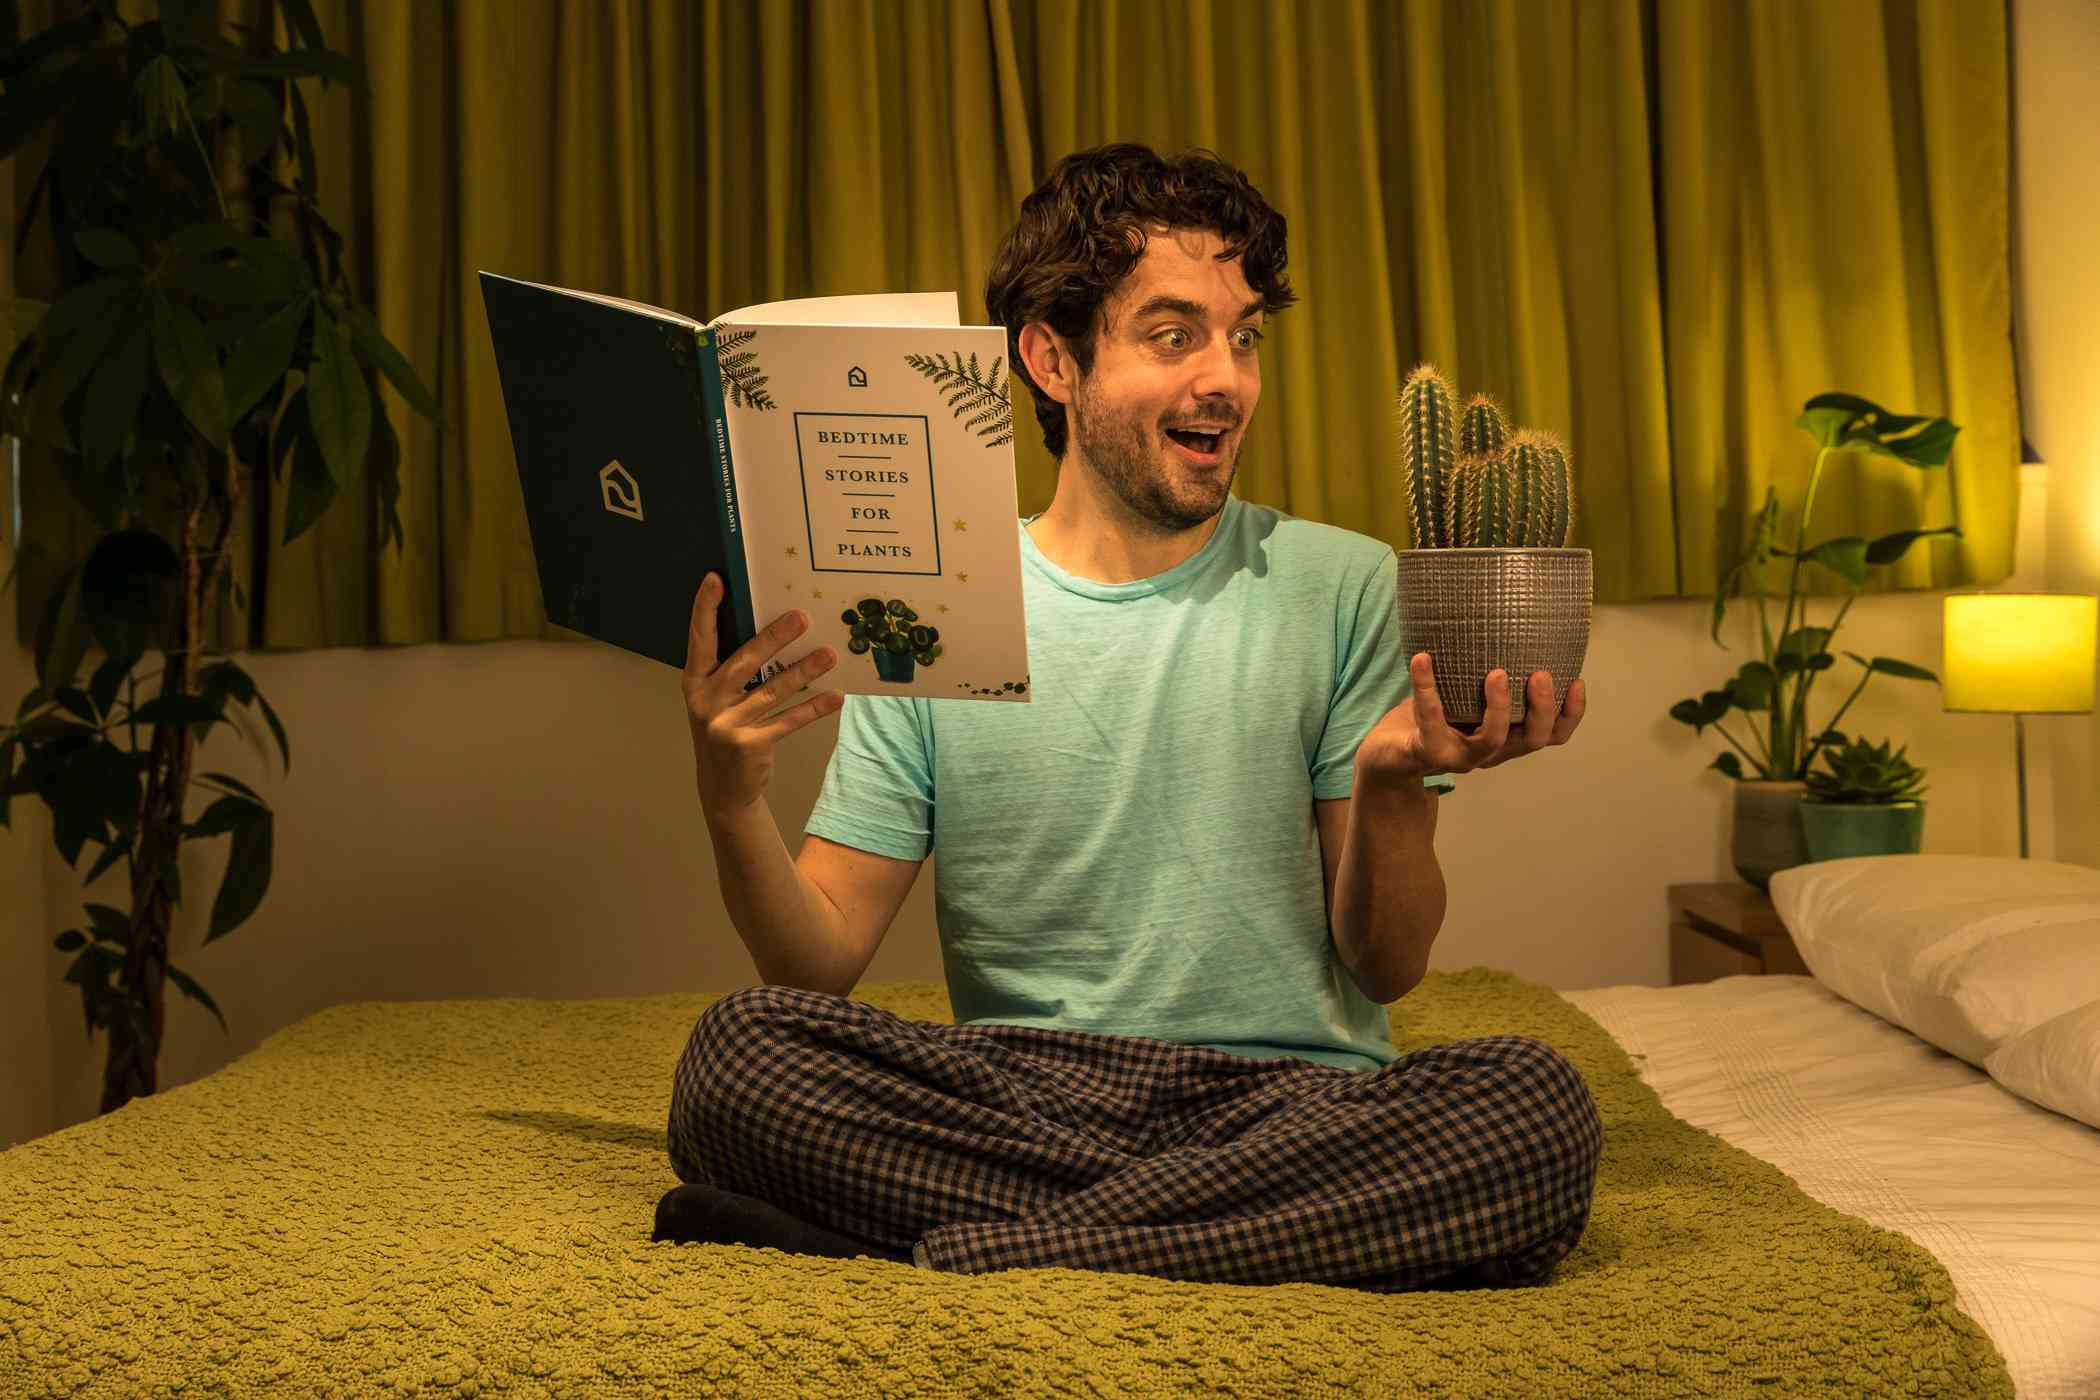 a man holds a book and plant in his hands while in bed